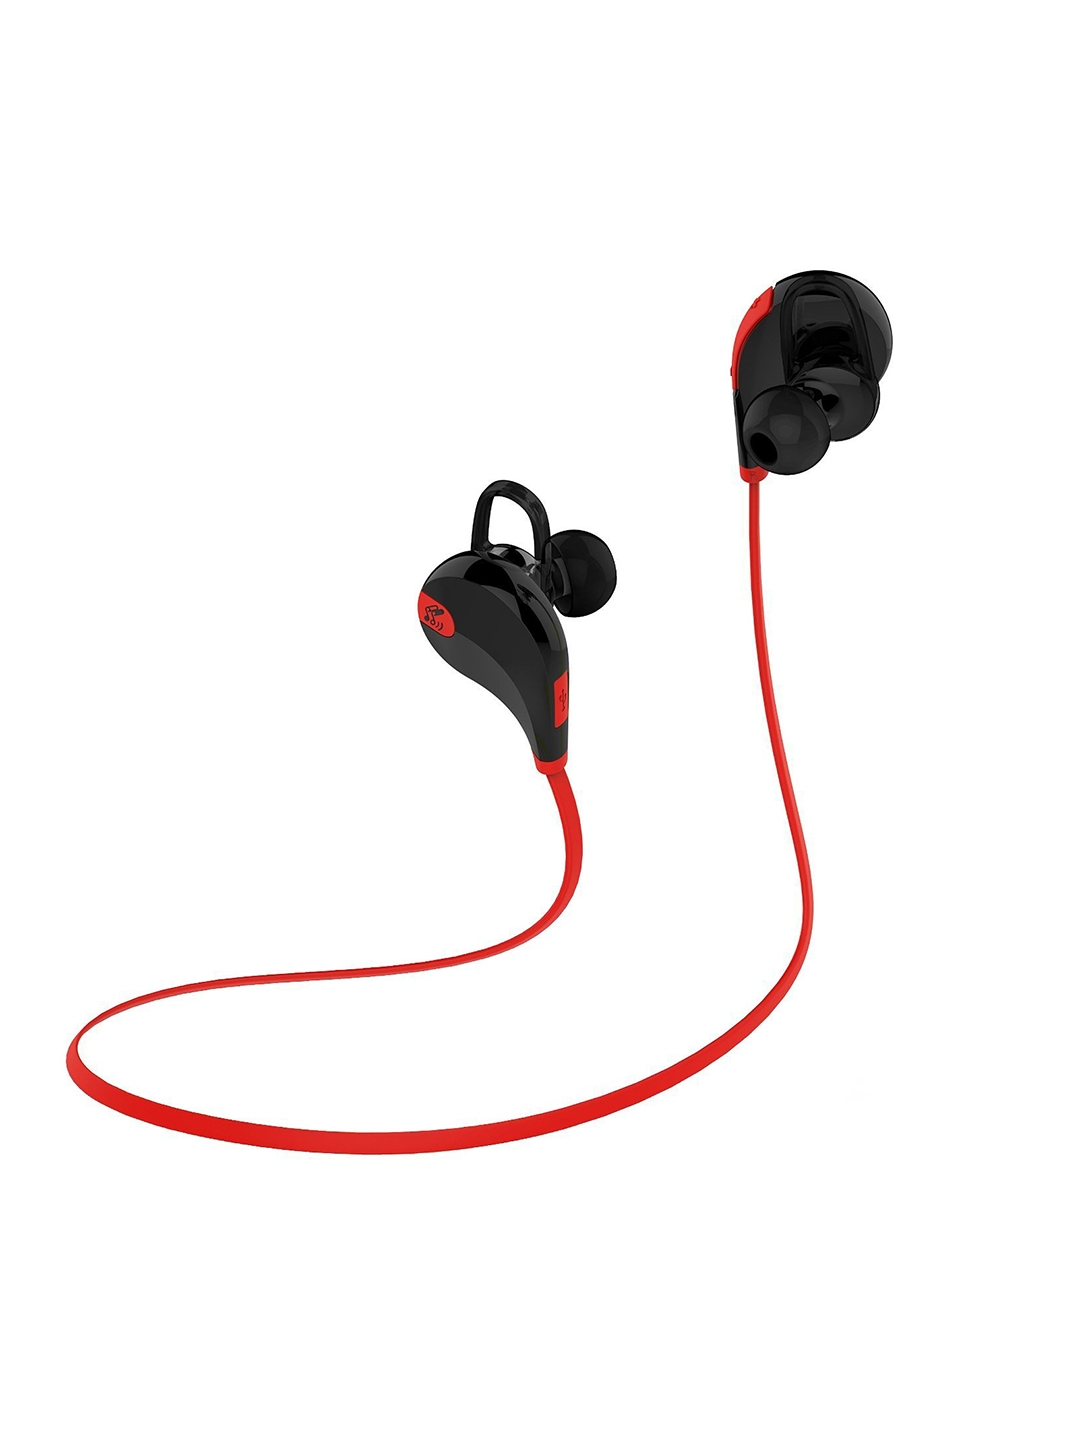 SoundPEATS Red   Black Qy7 Bluetooth 4.0 Wireless Sports Headset with Mic